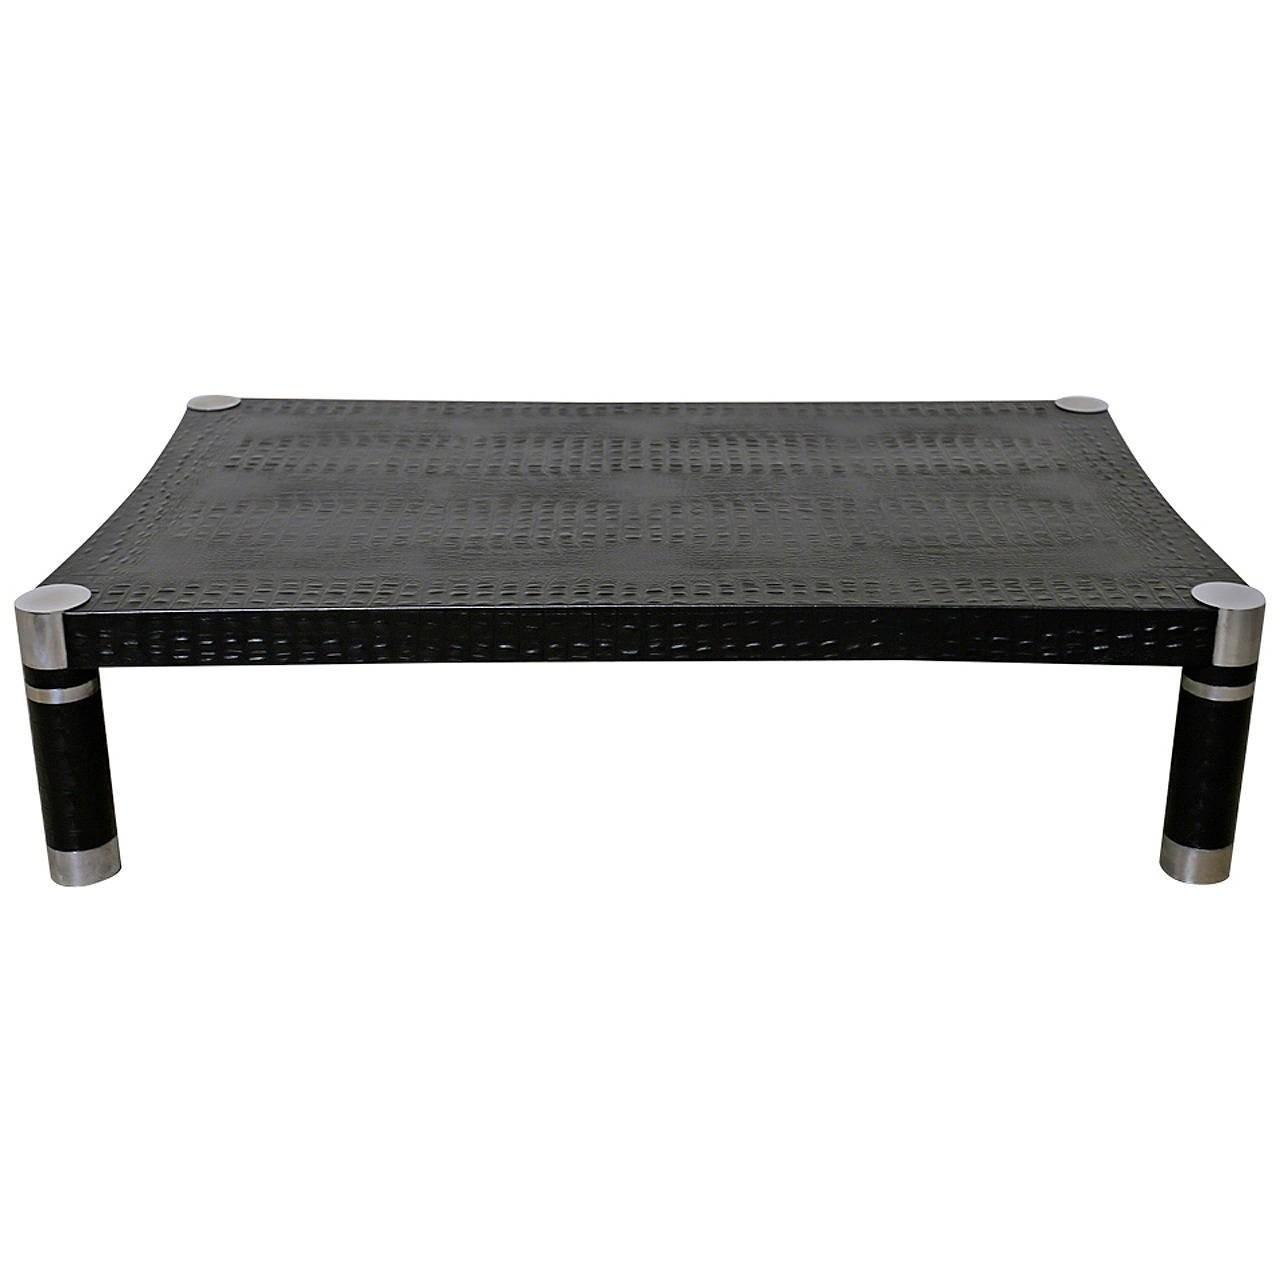 Alligator Embossed Leather Coffee Table Karl Springer